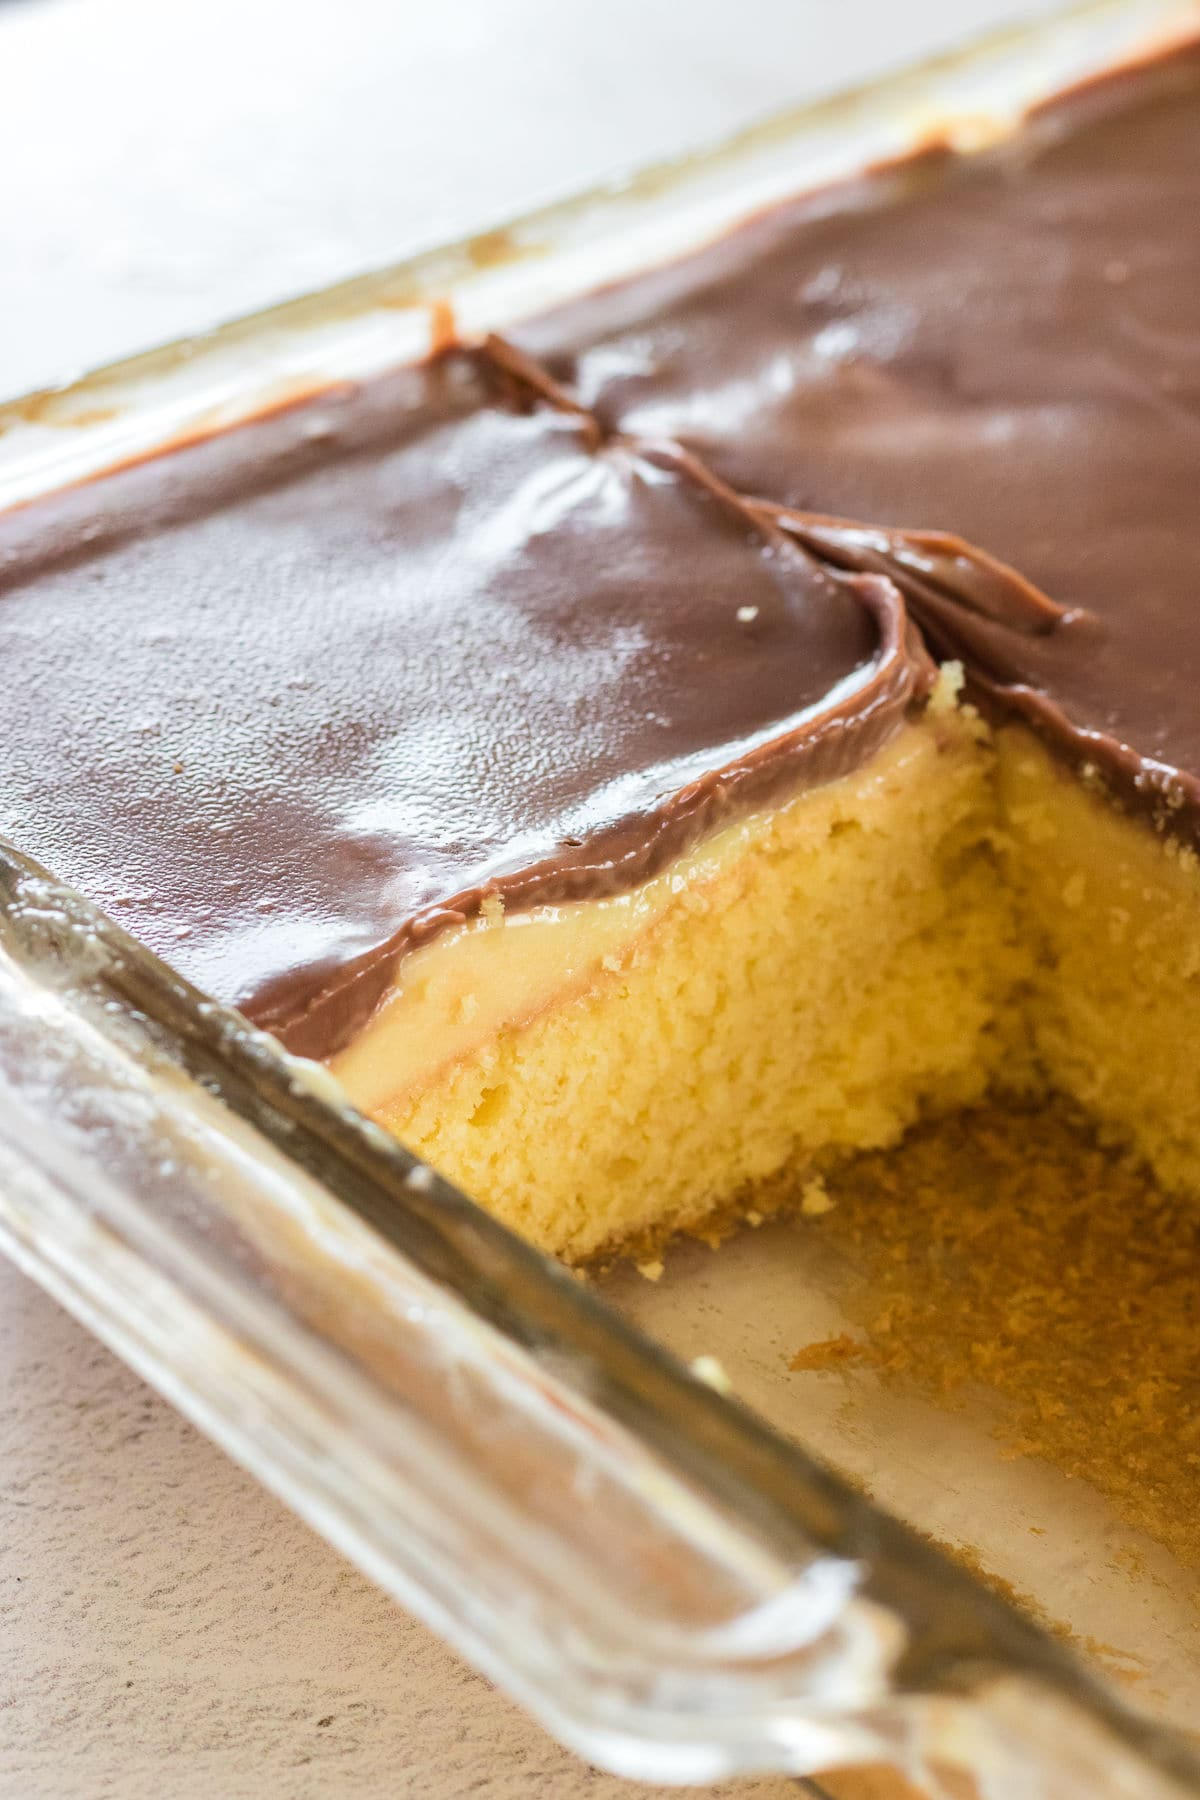 Close up of the cake in the baking pan with one serving removed.